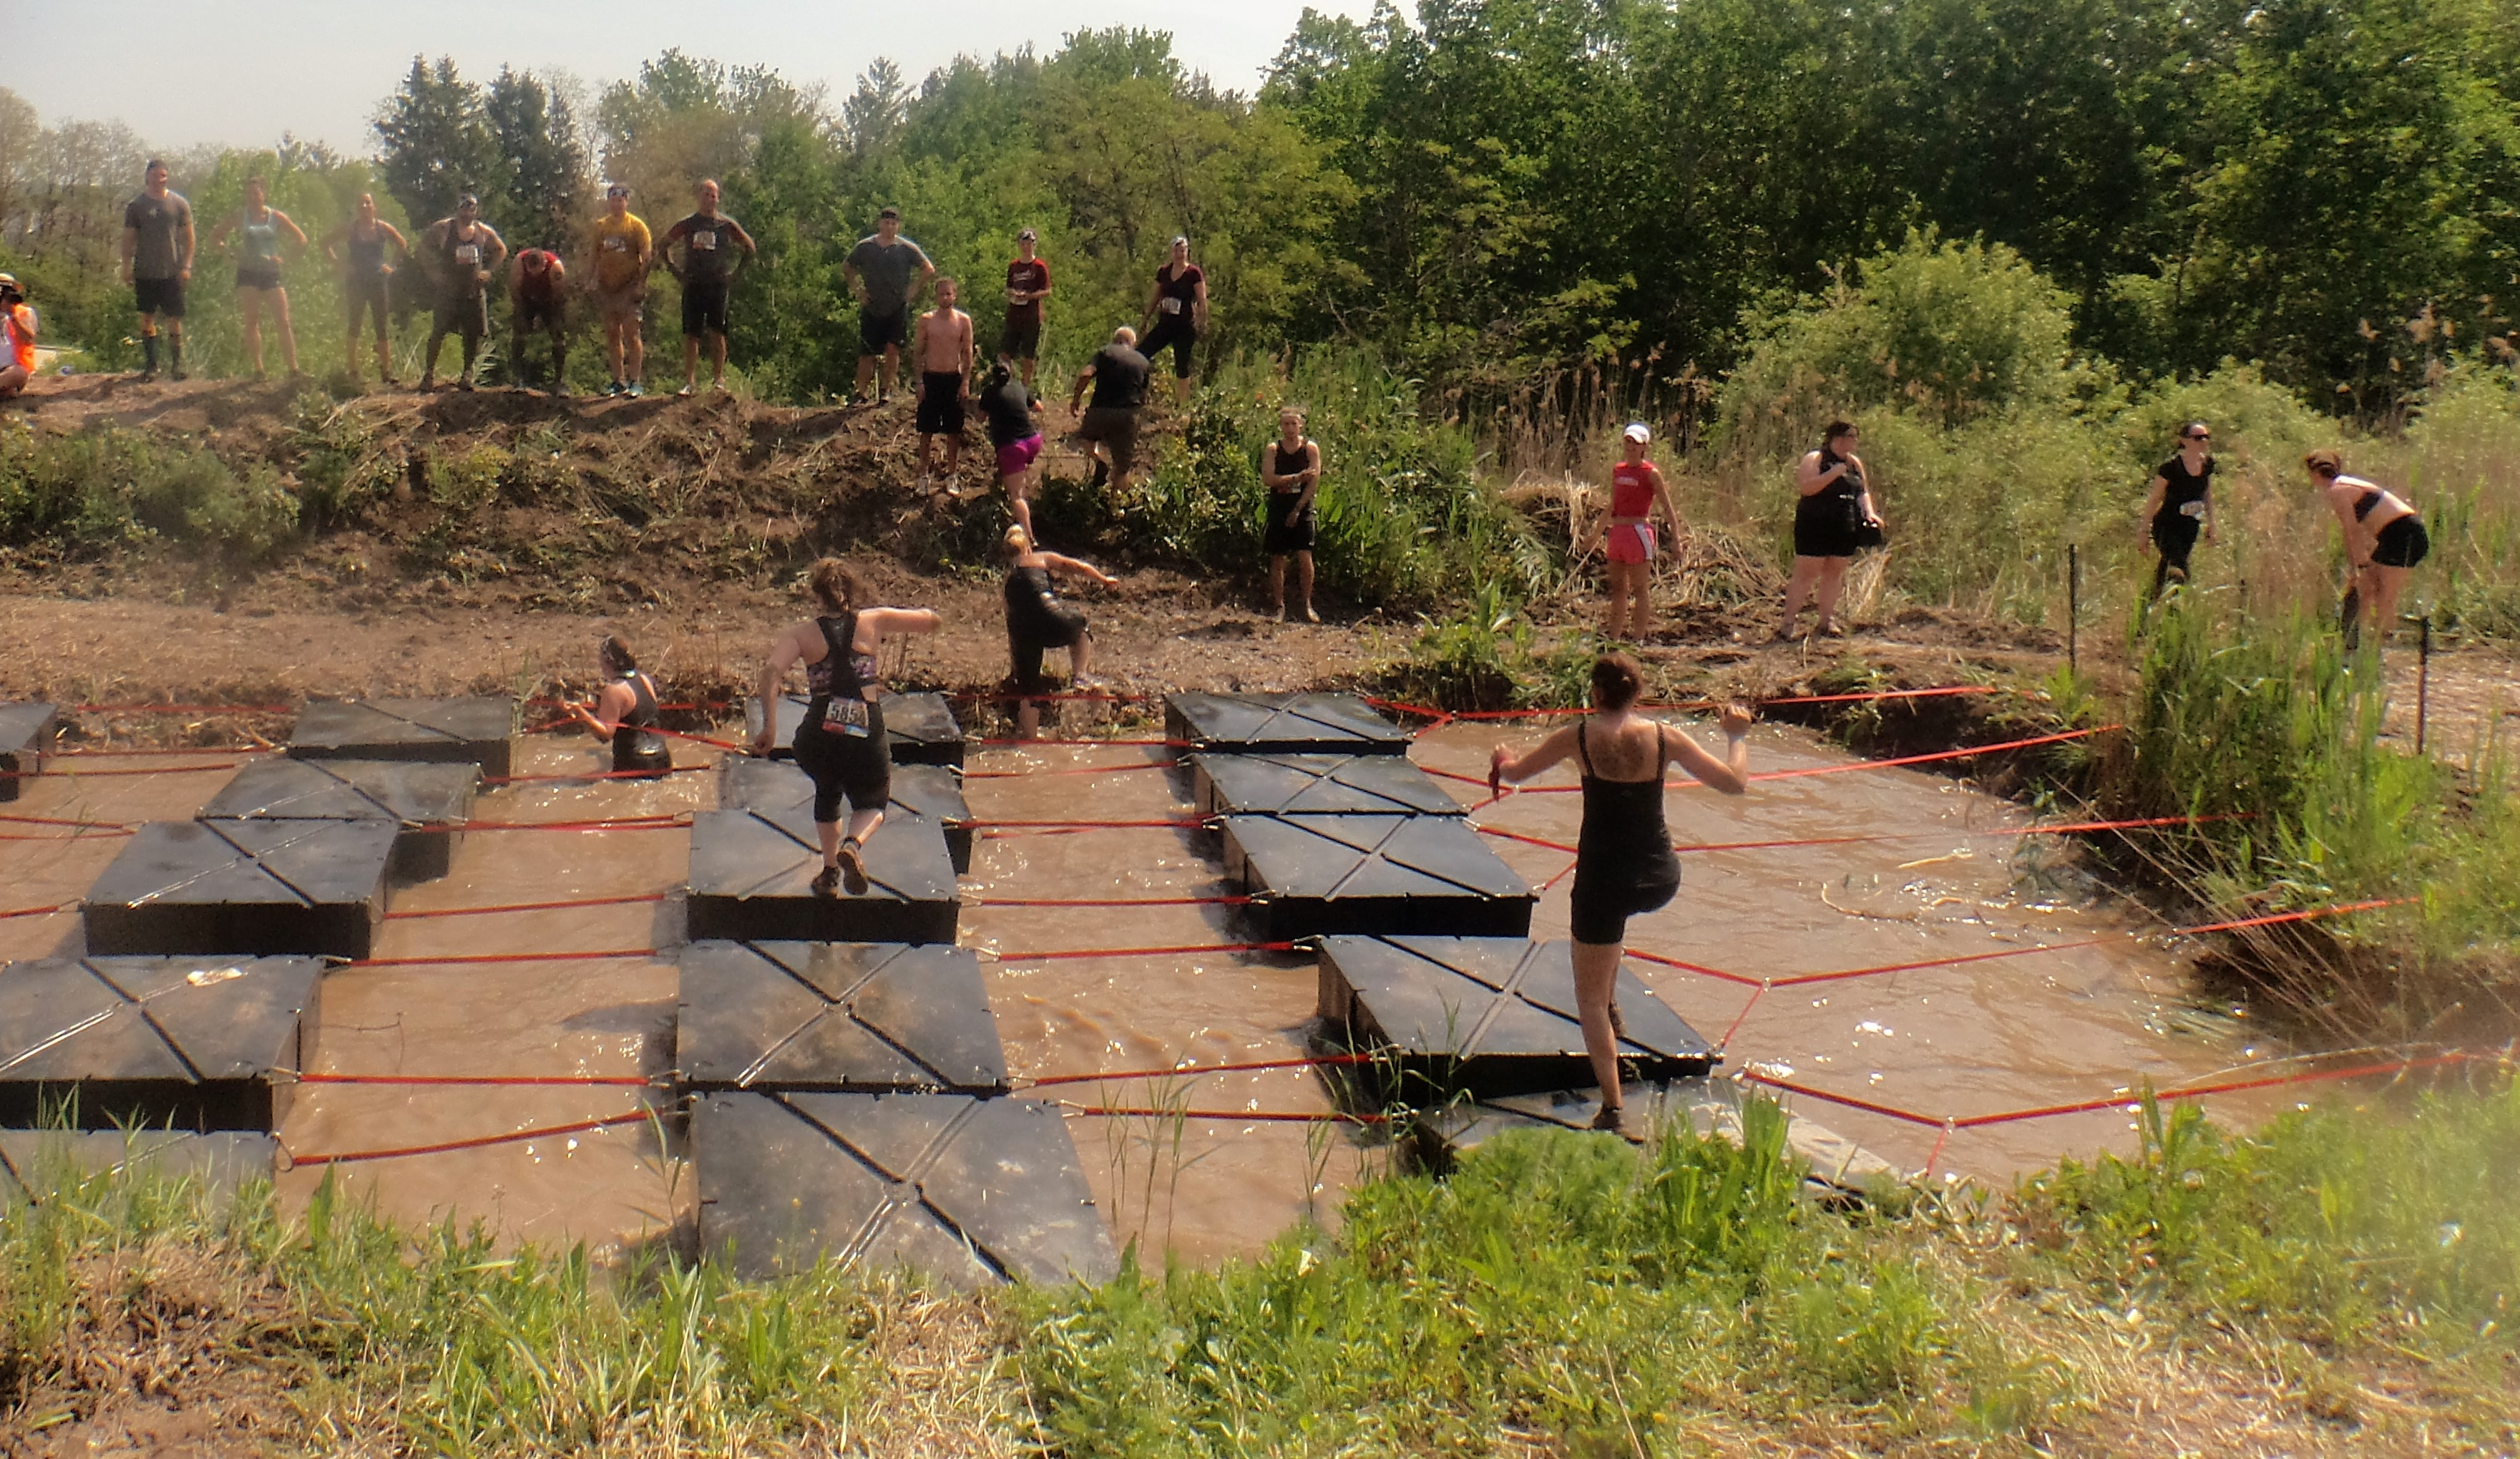 Rugged maniac kitchener